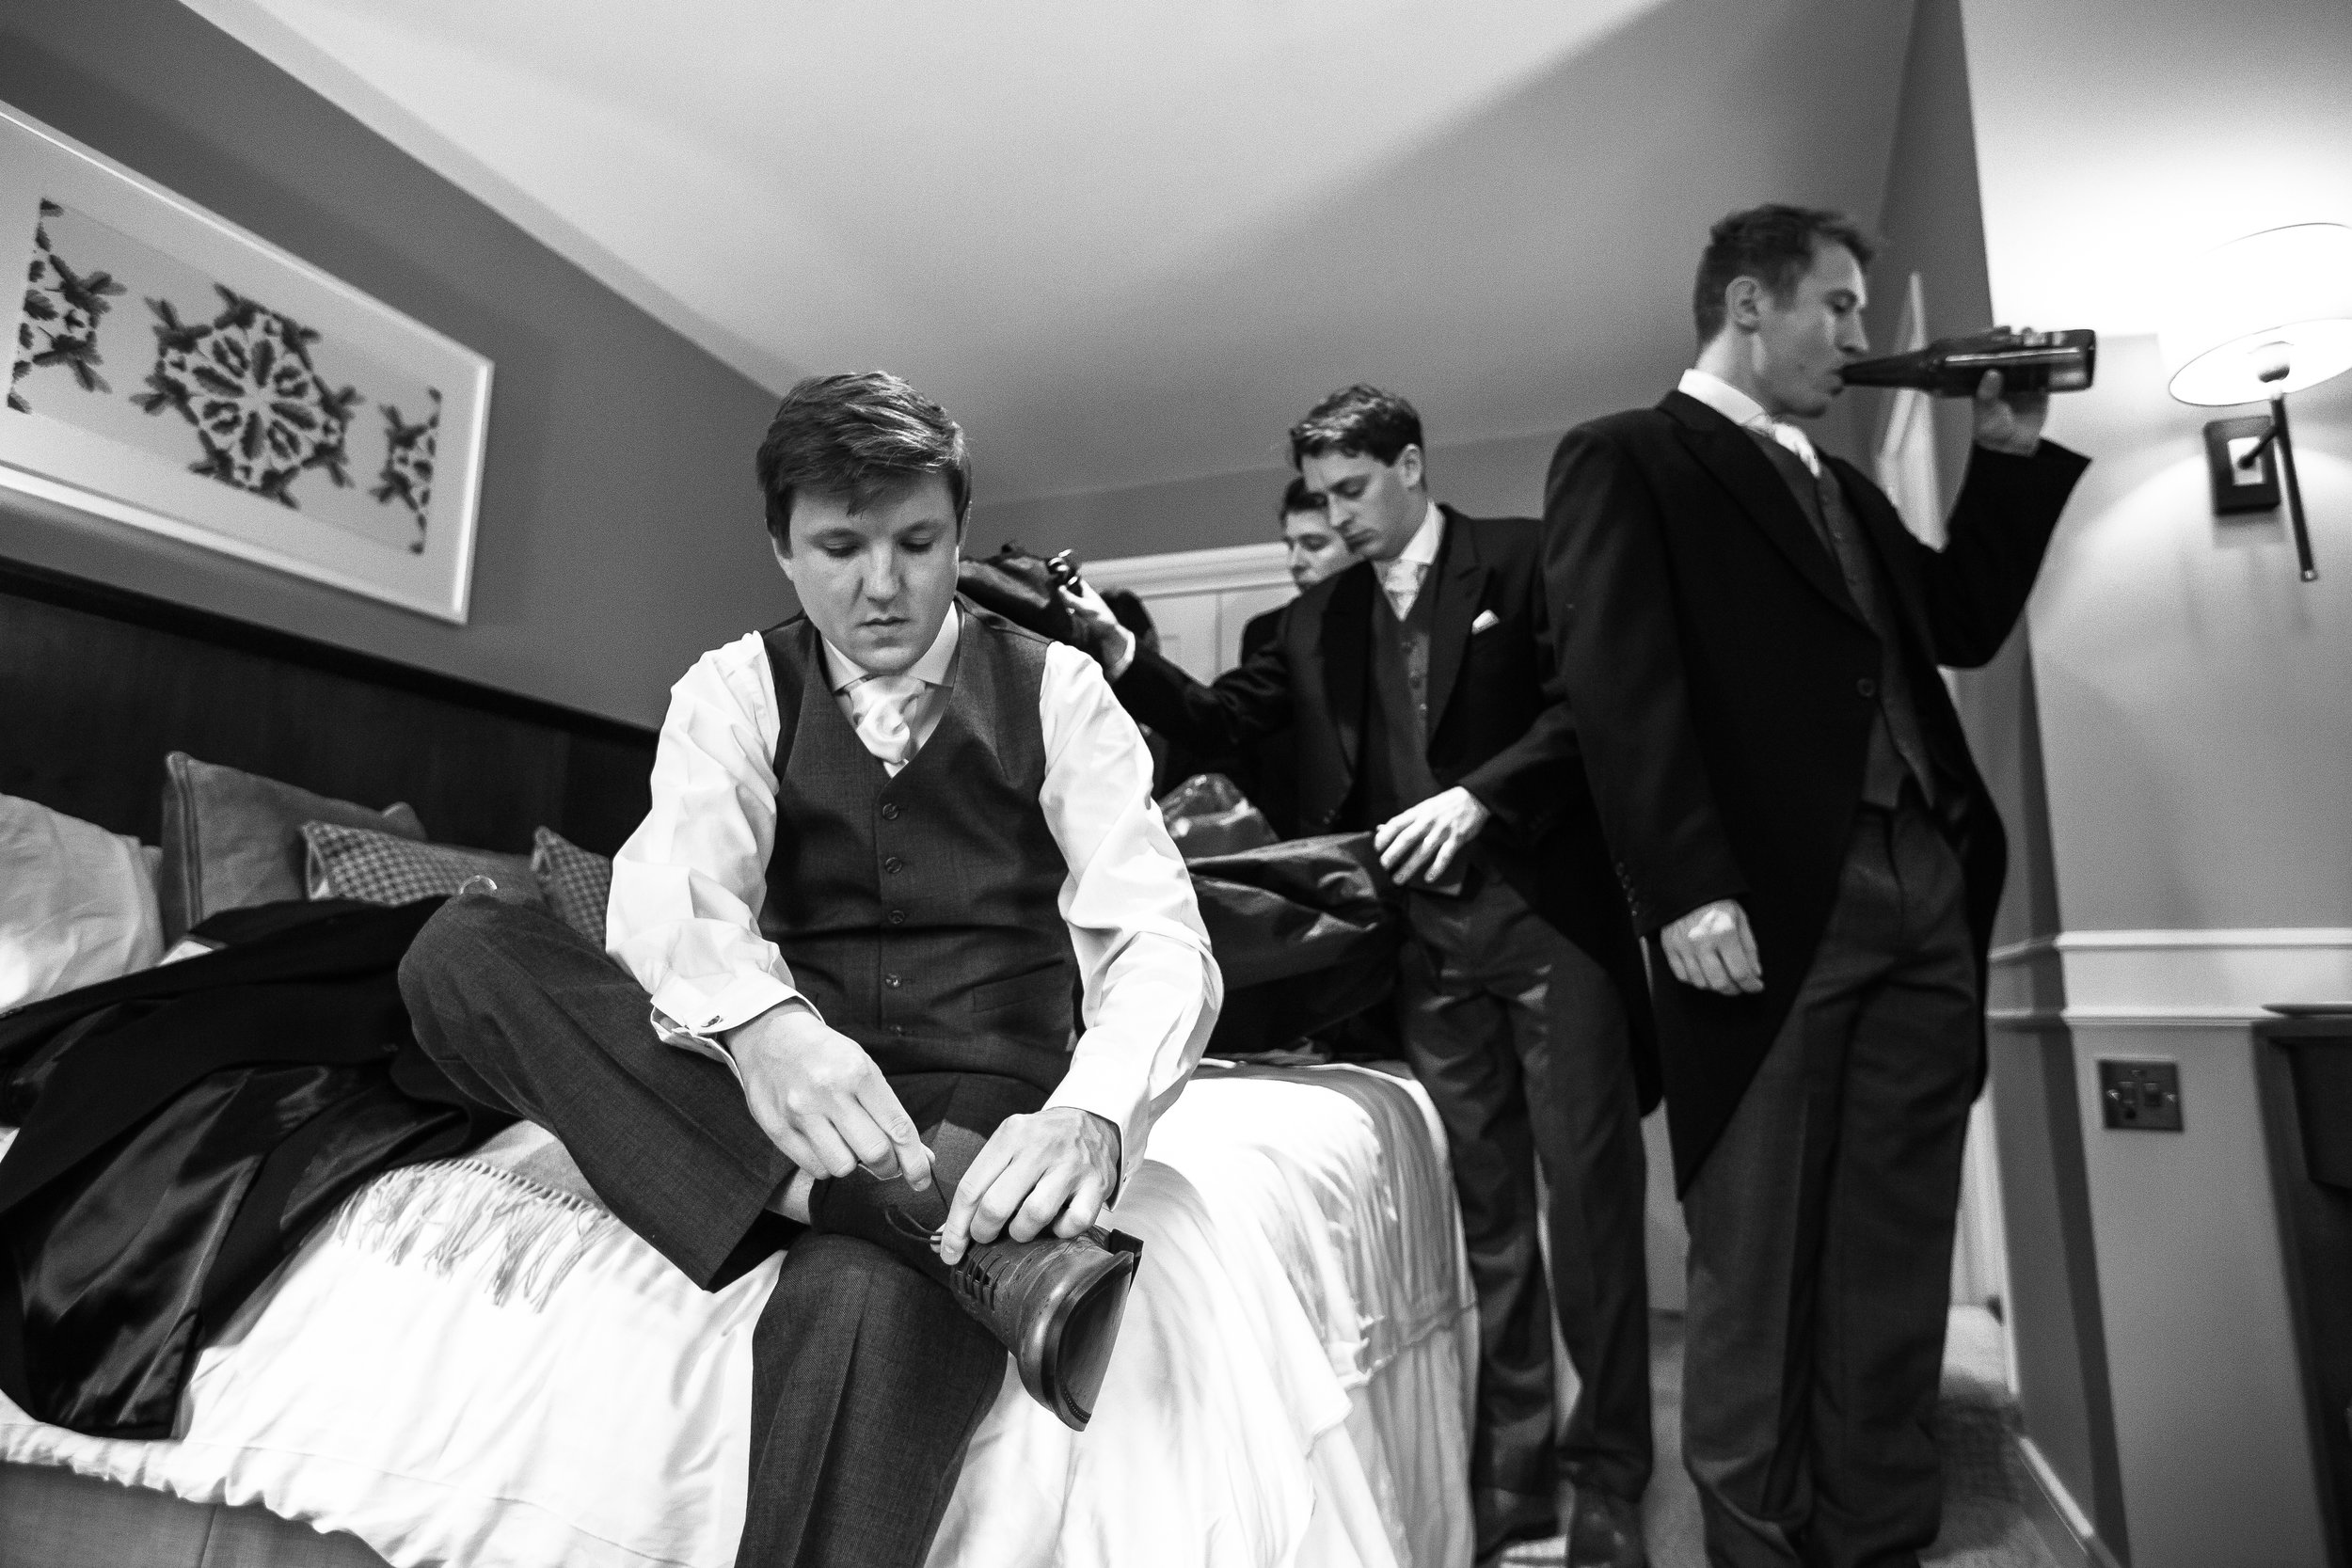 surrey-ascot-royal-berkshire-hotel-autumn-wedding-groomsmen-4